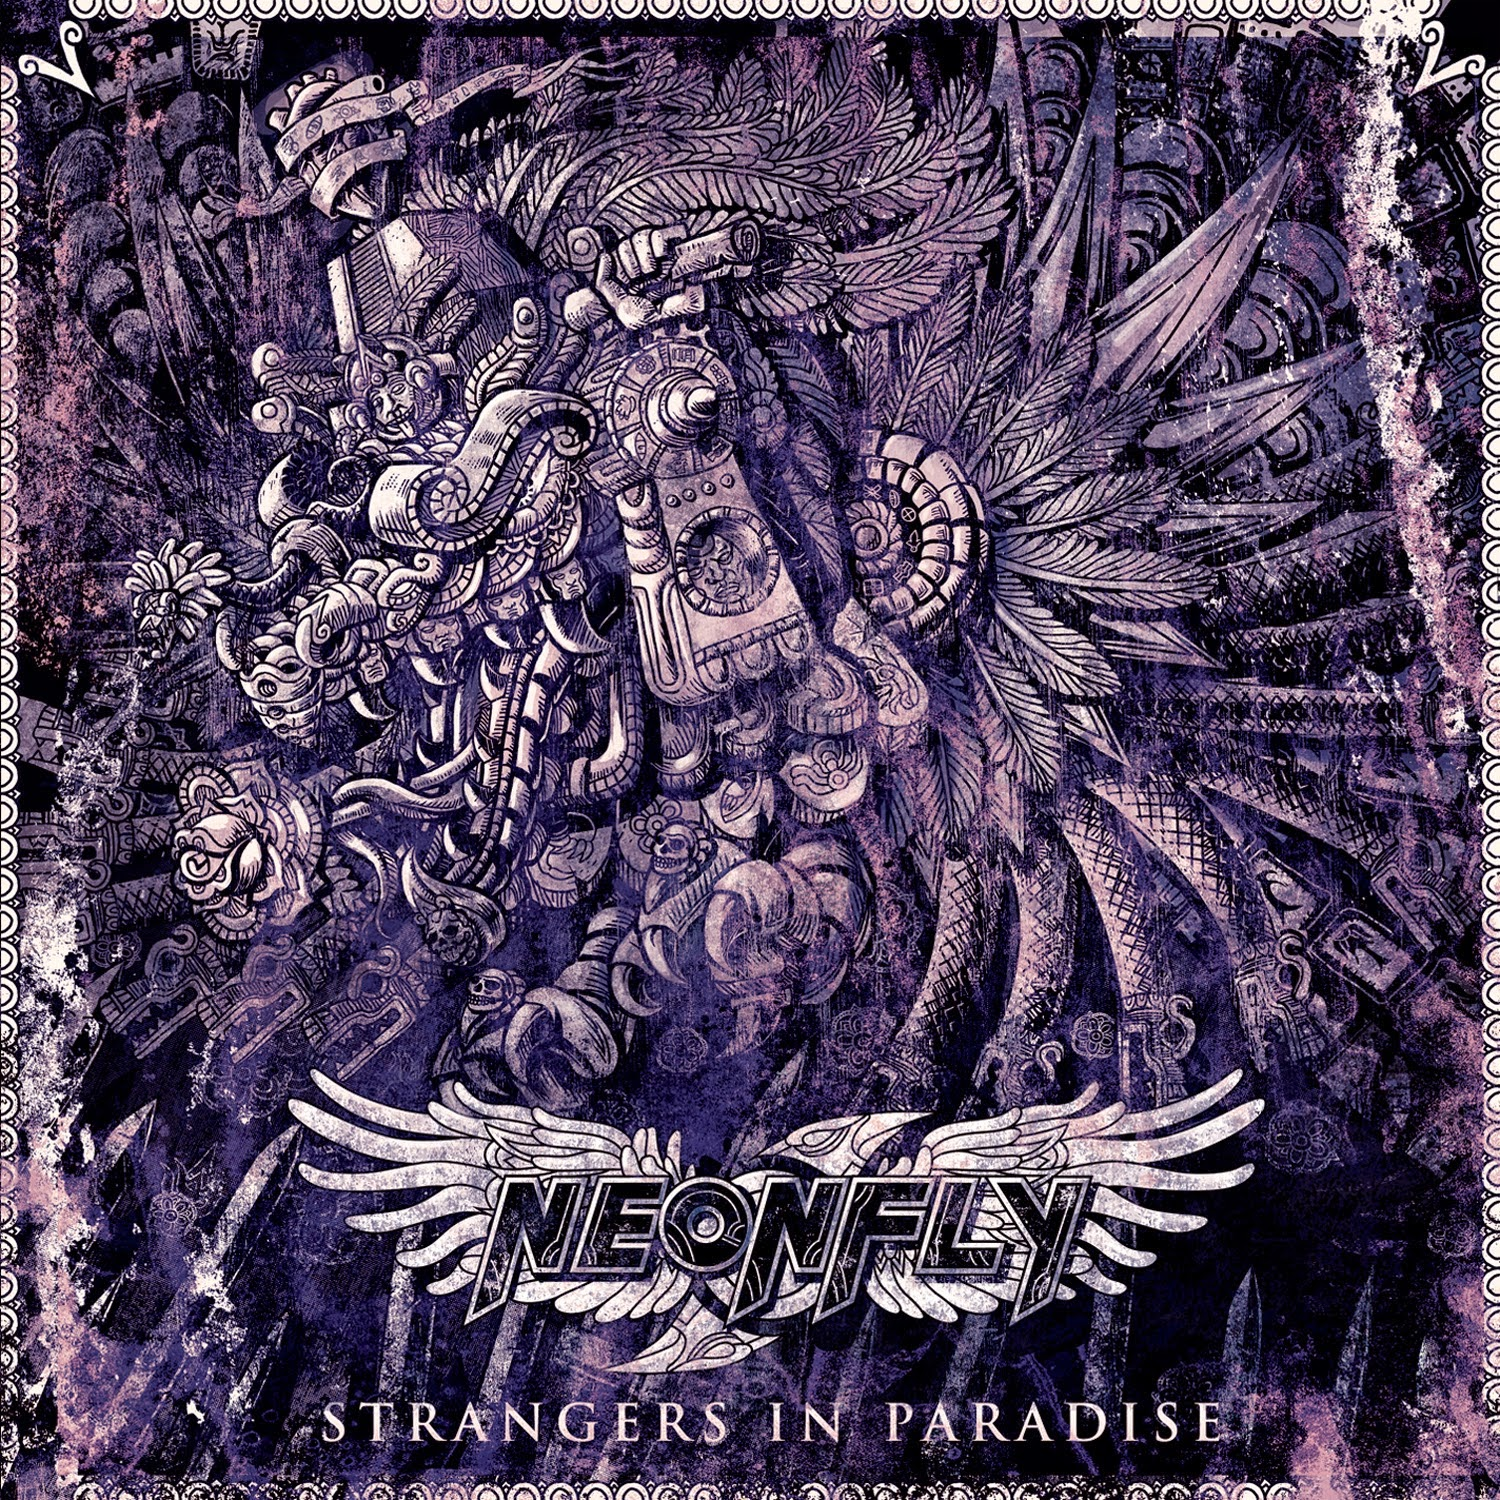 http://rock-and-metal-4-you.blogspot.de/2014/11/cd-review-neonfly-strangers-in-paradise.html